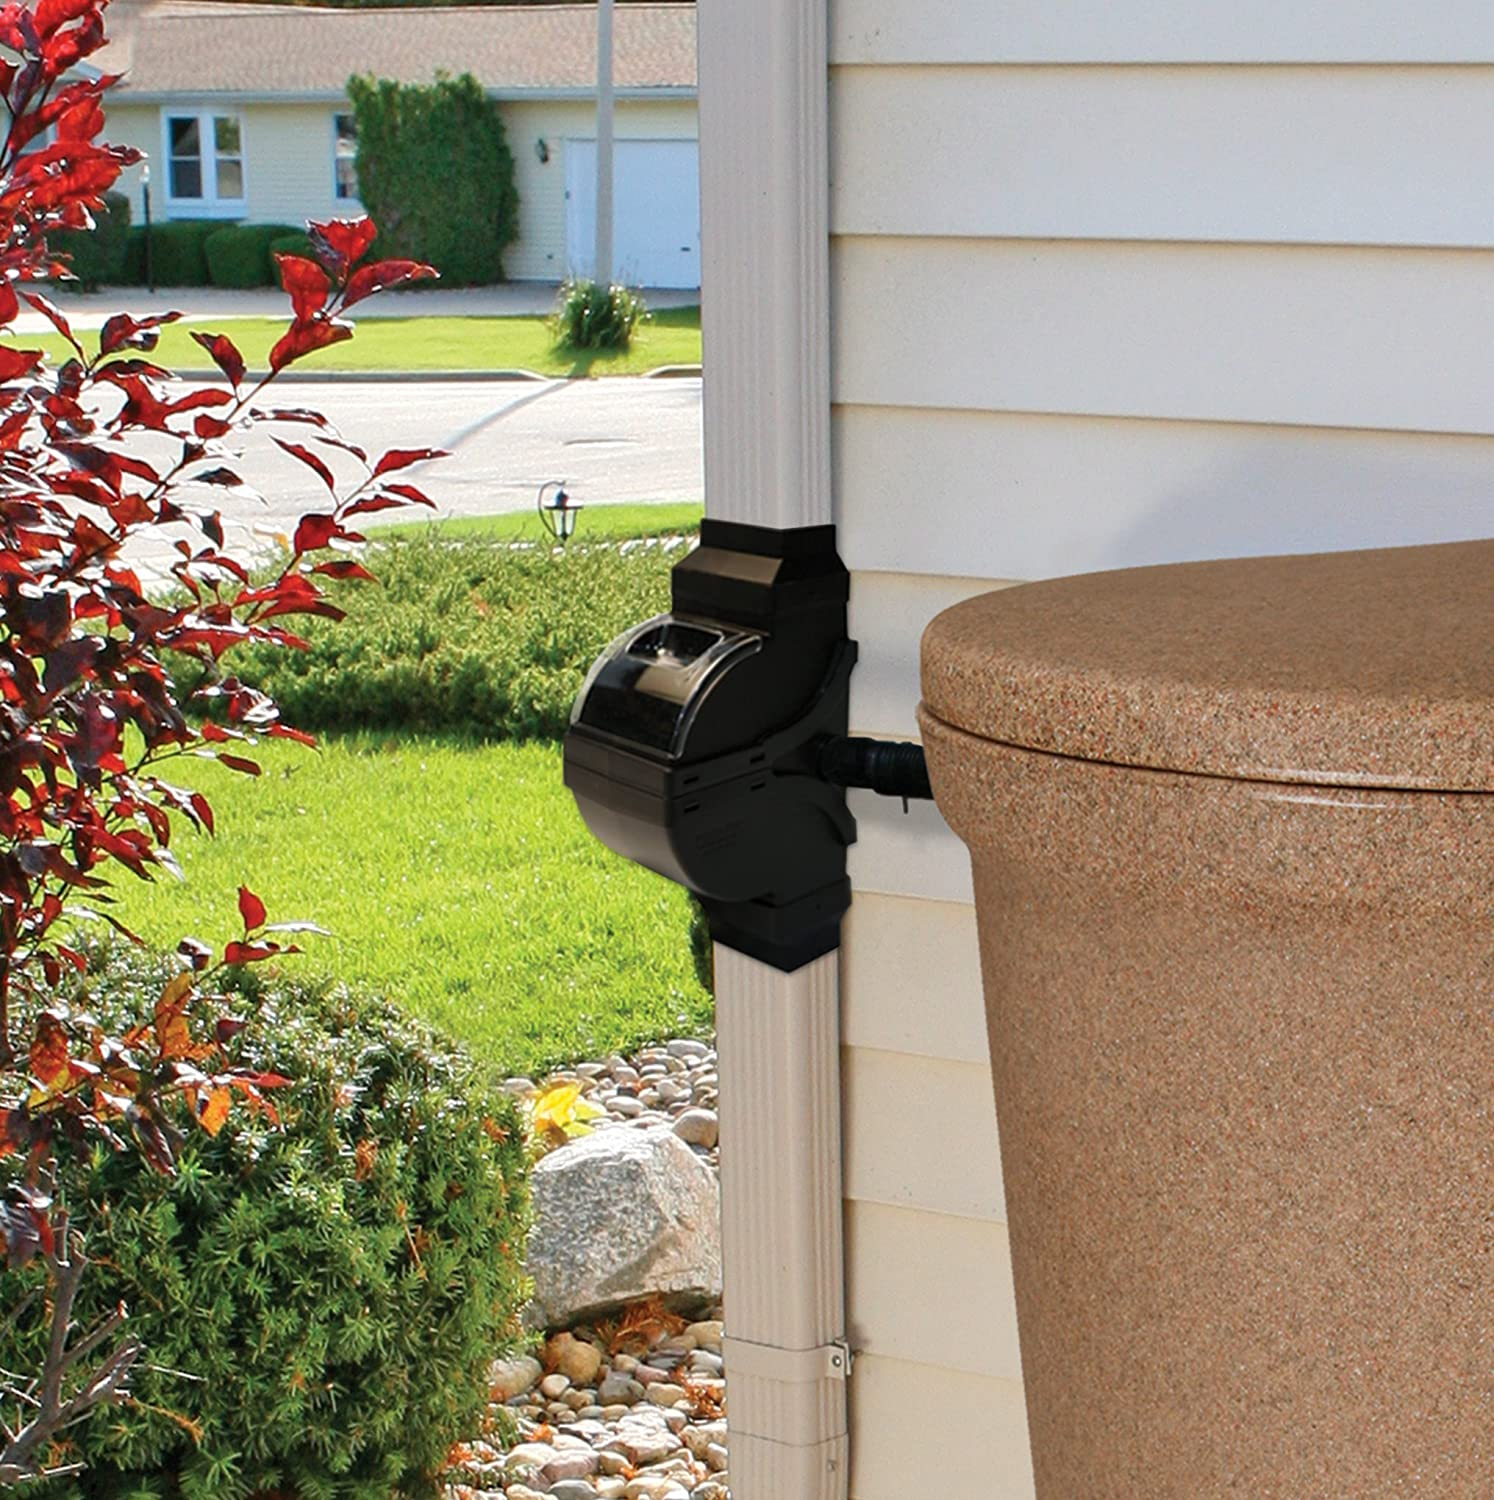 where to find rain barrels for free